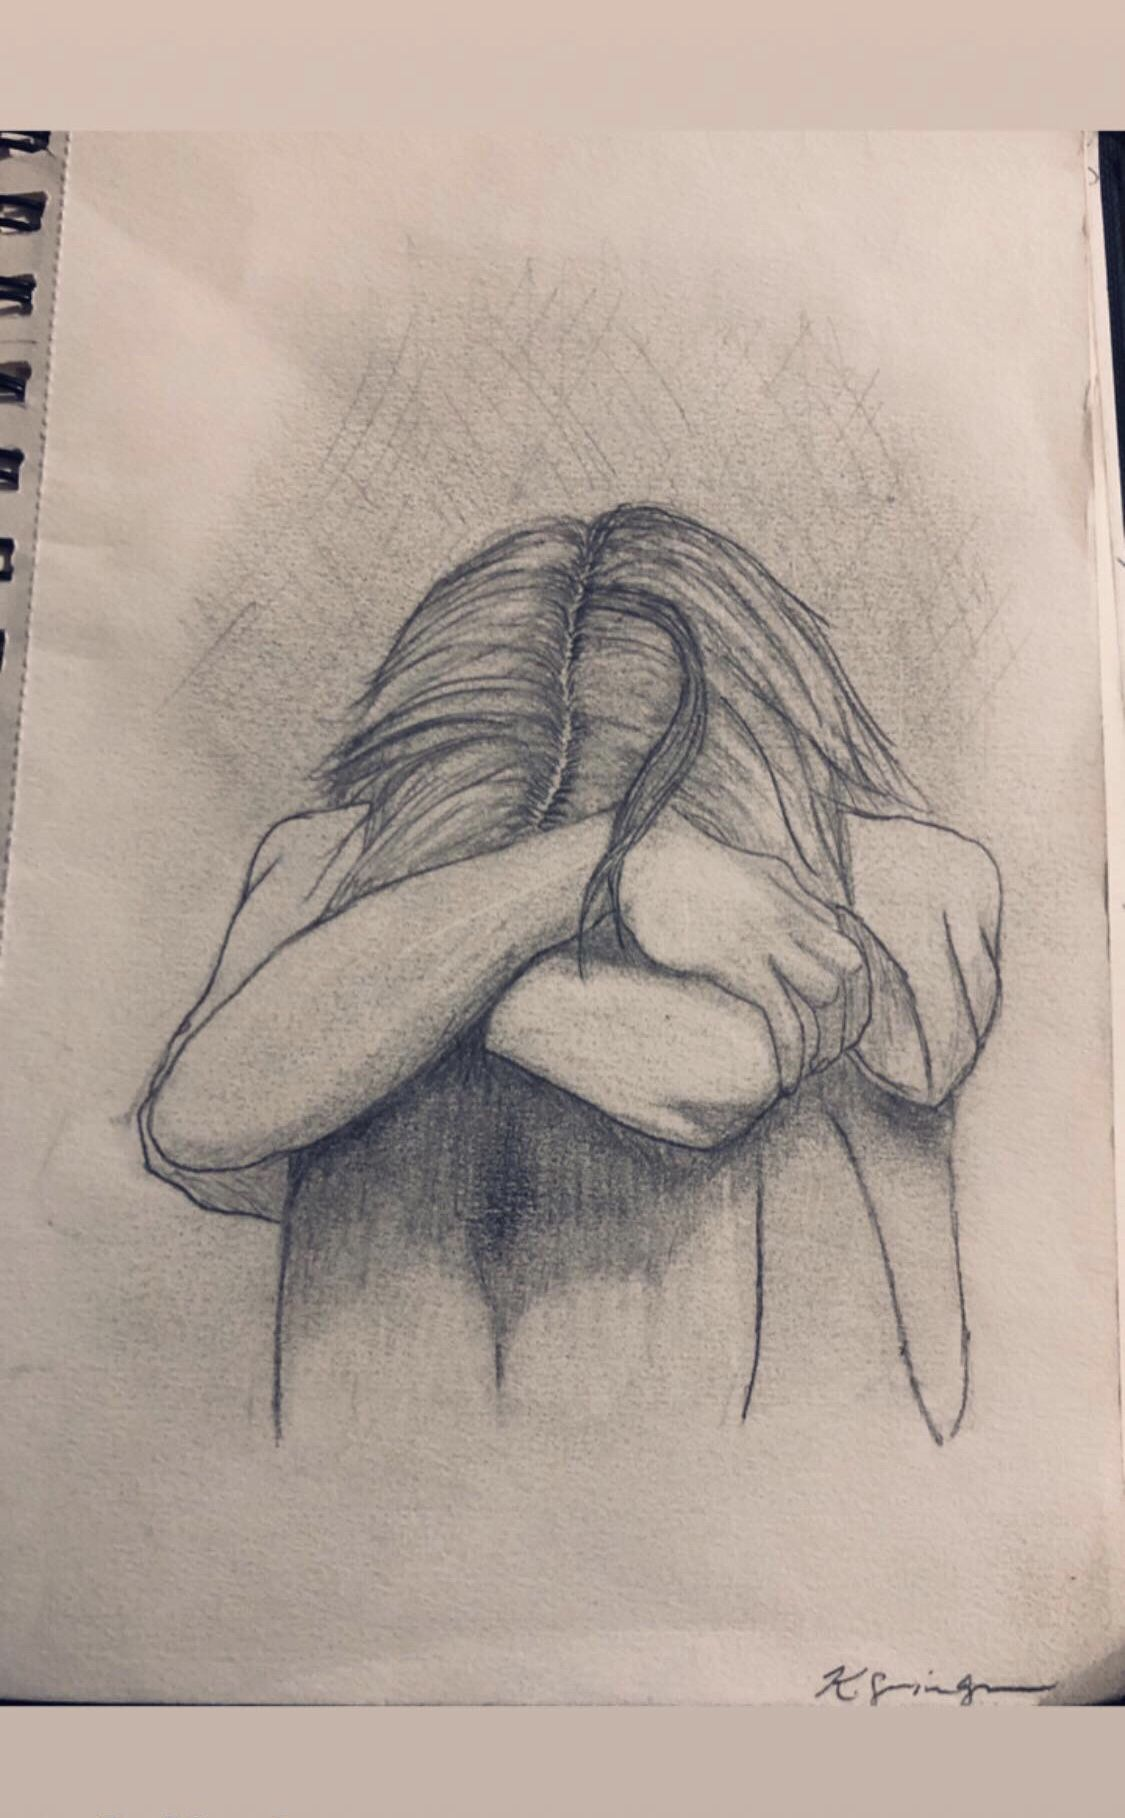 #sad #sketchbook #drawings #art #emotions #pencilsketch